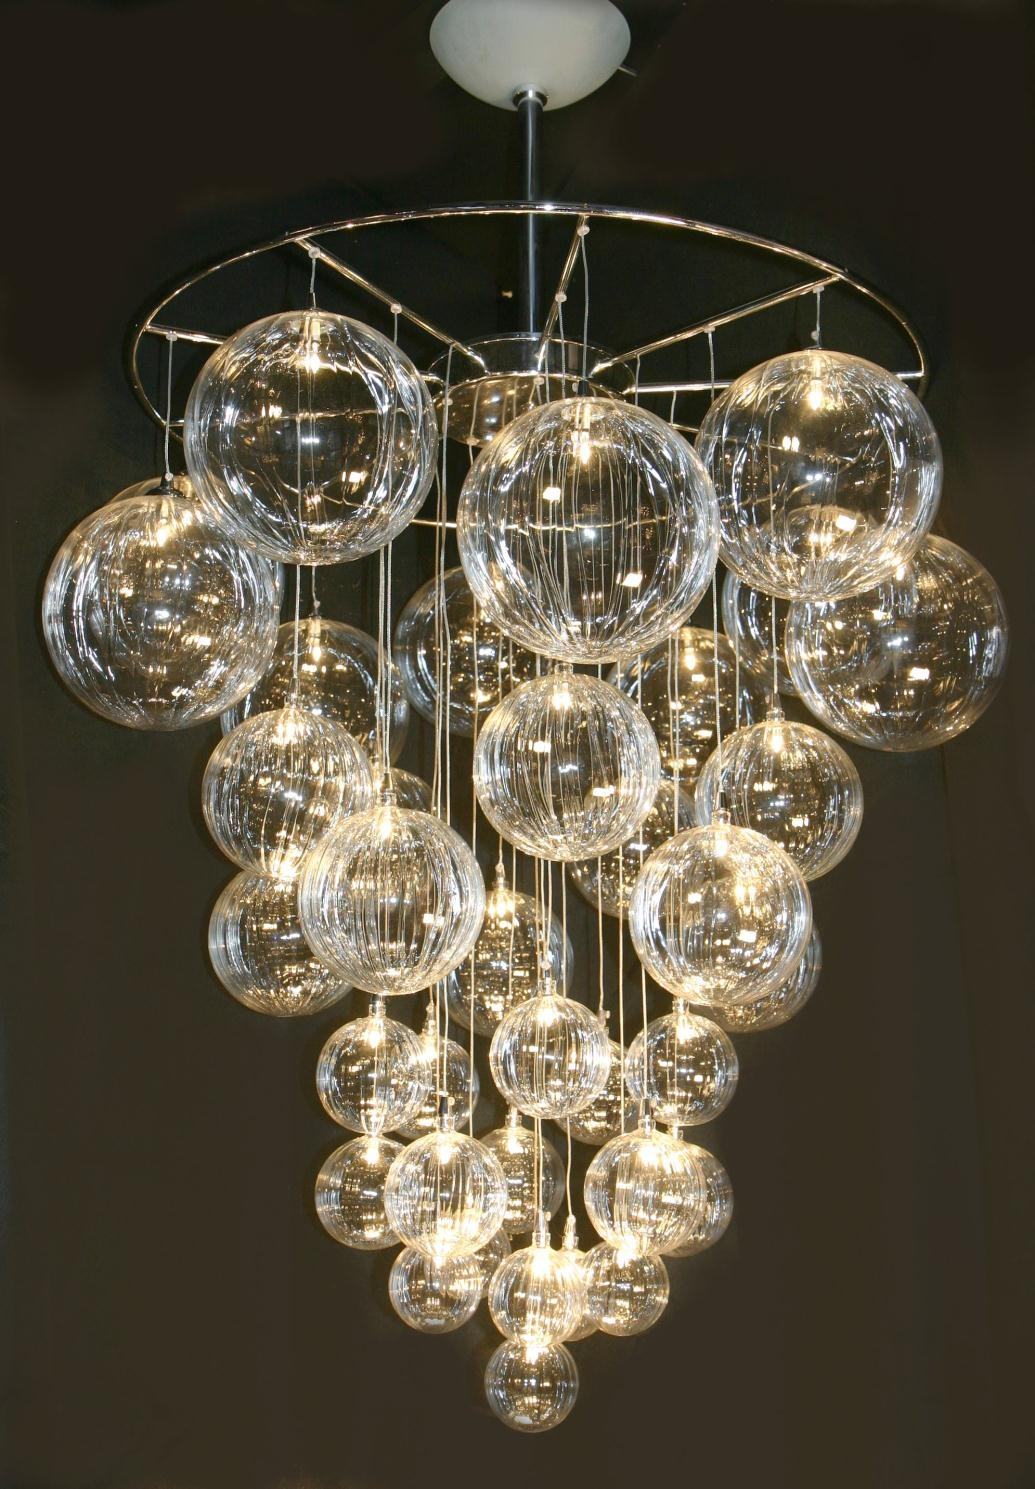 Modern Lights Chandeliers With Funky Chandeliers (View 5 of 15)